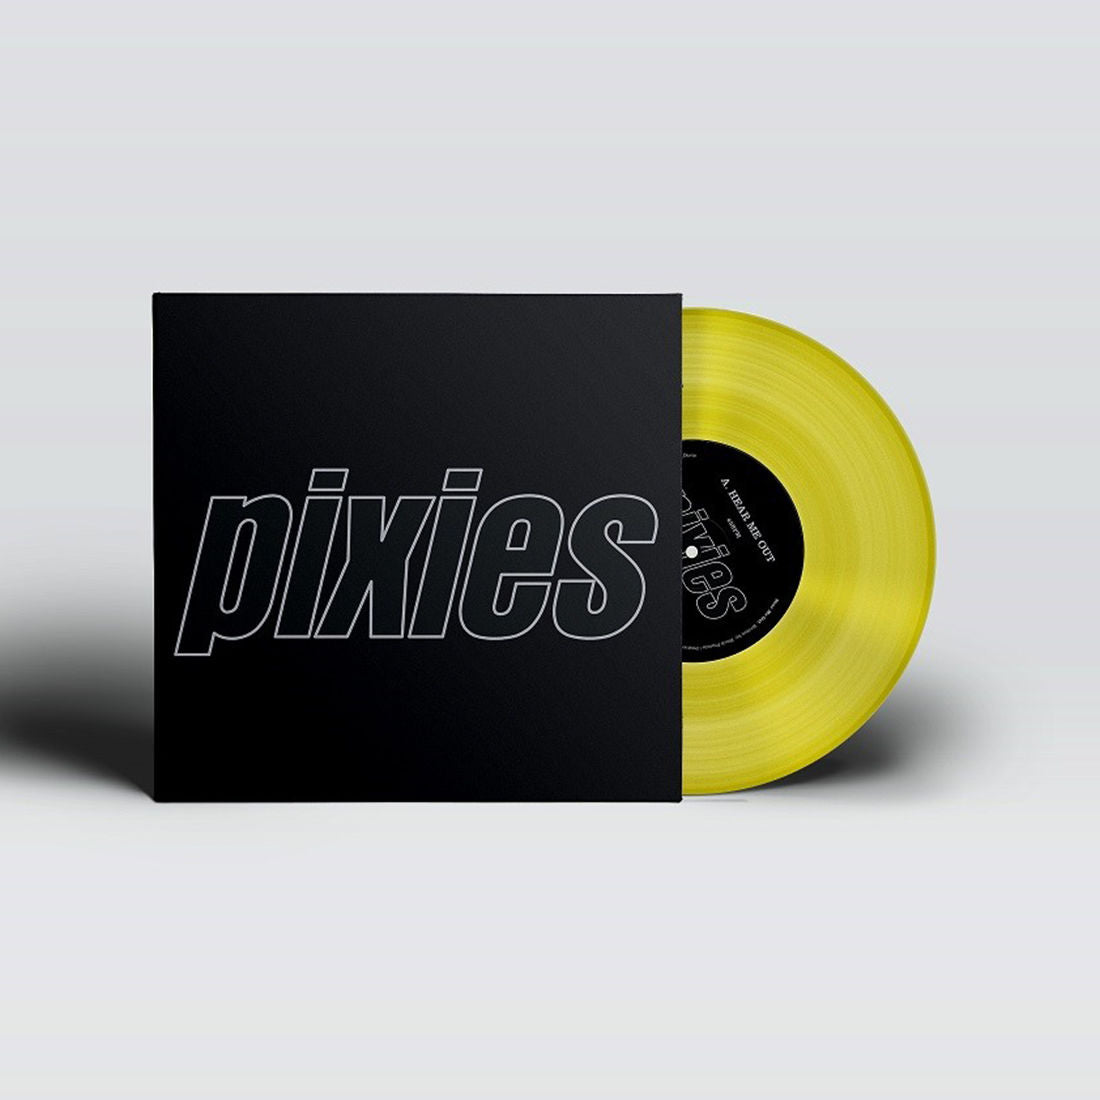 "Pixies - Hear Me Out / Mambo Sun Limited Edition Yellow Colour 12"" Vinyl Record"